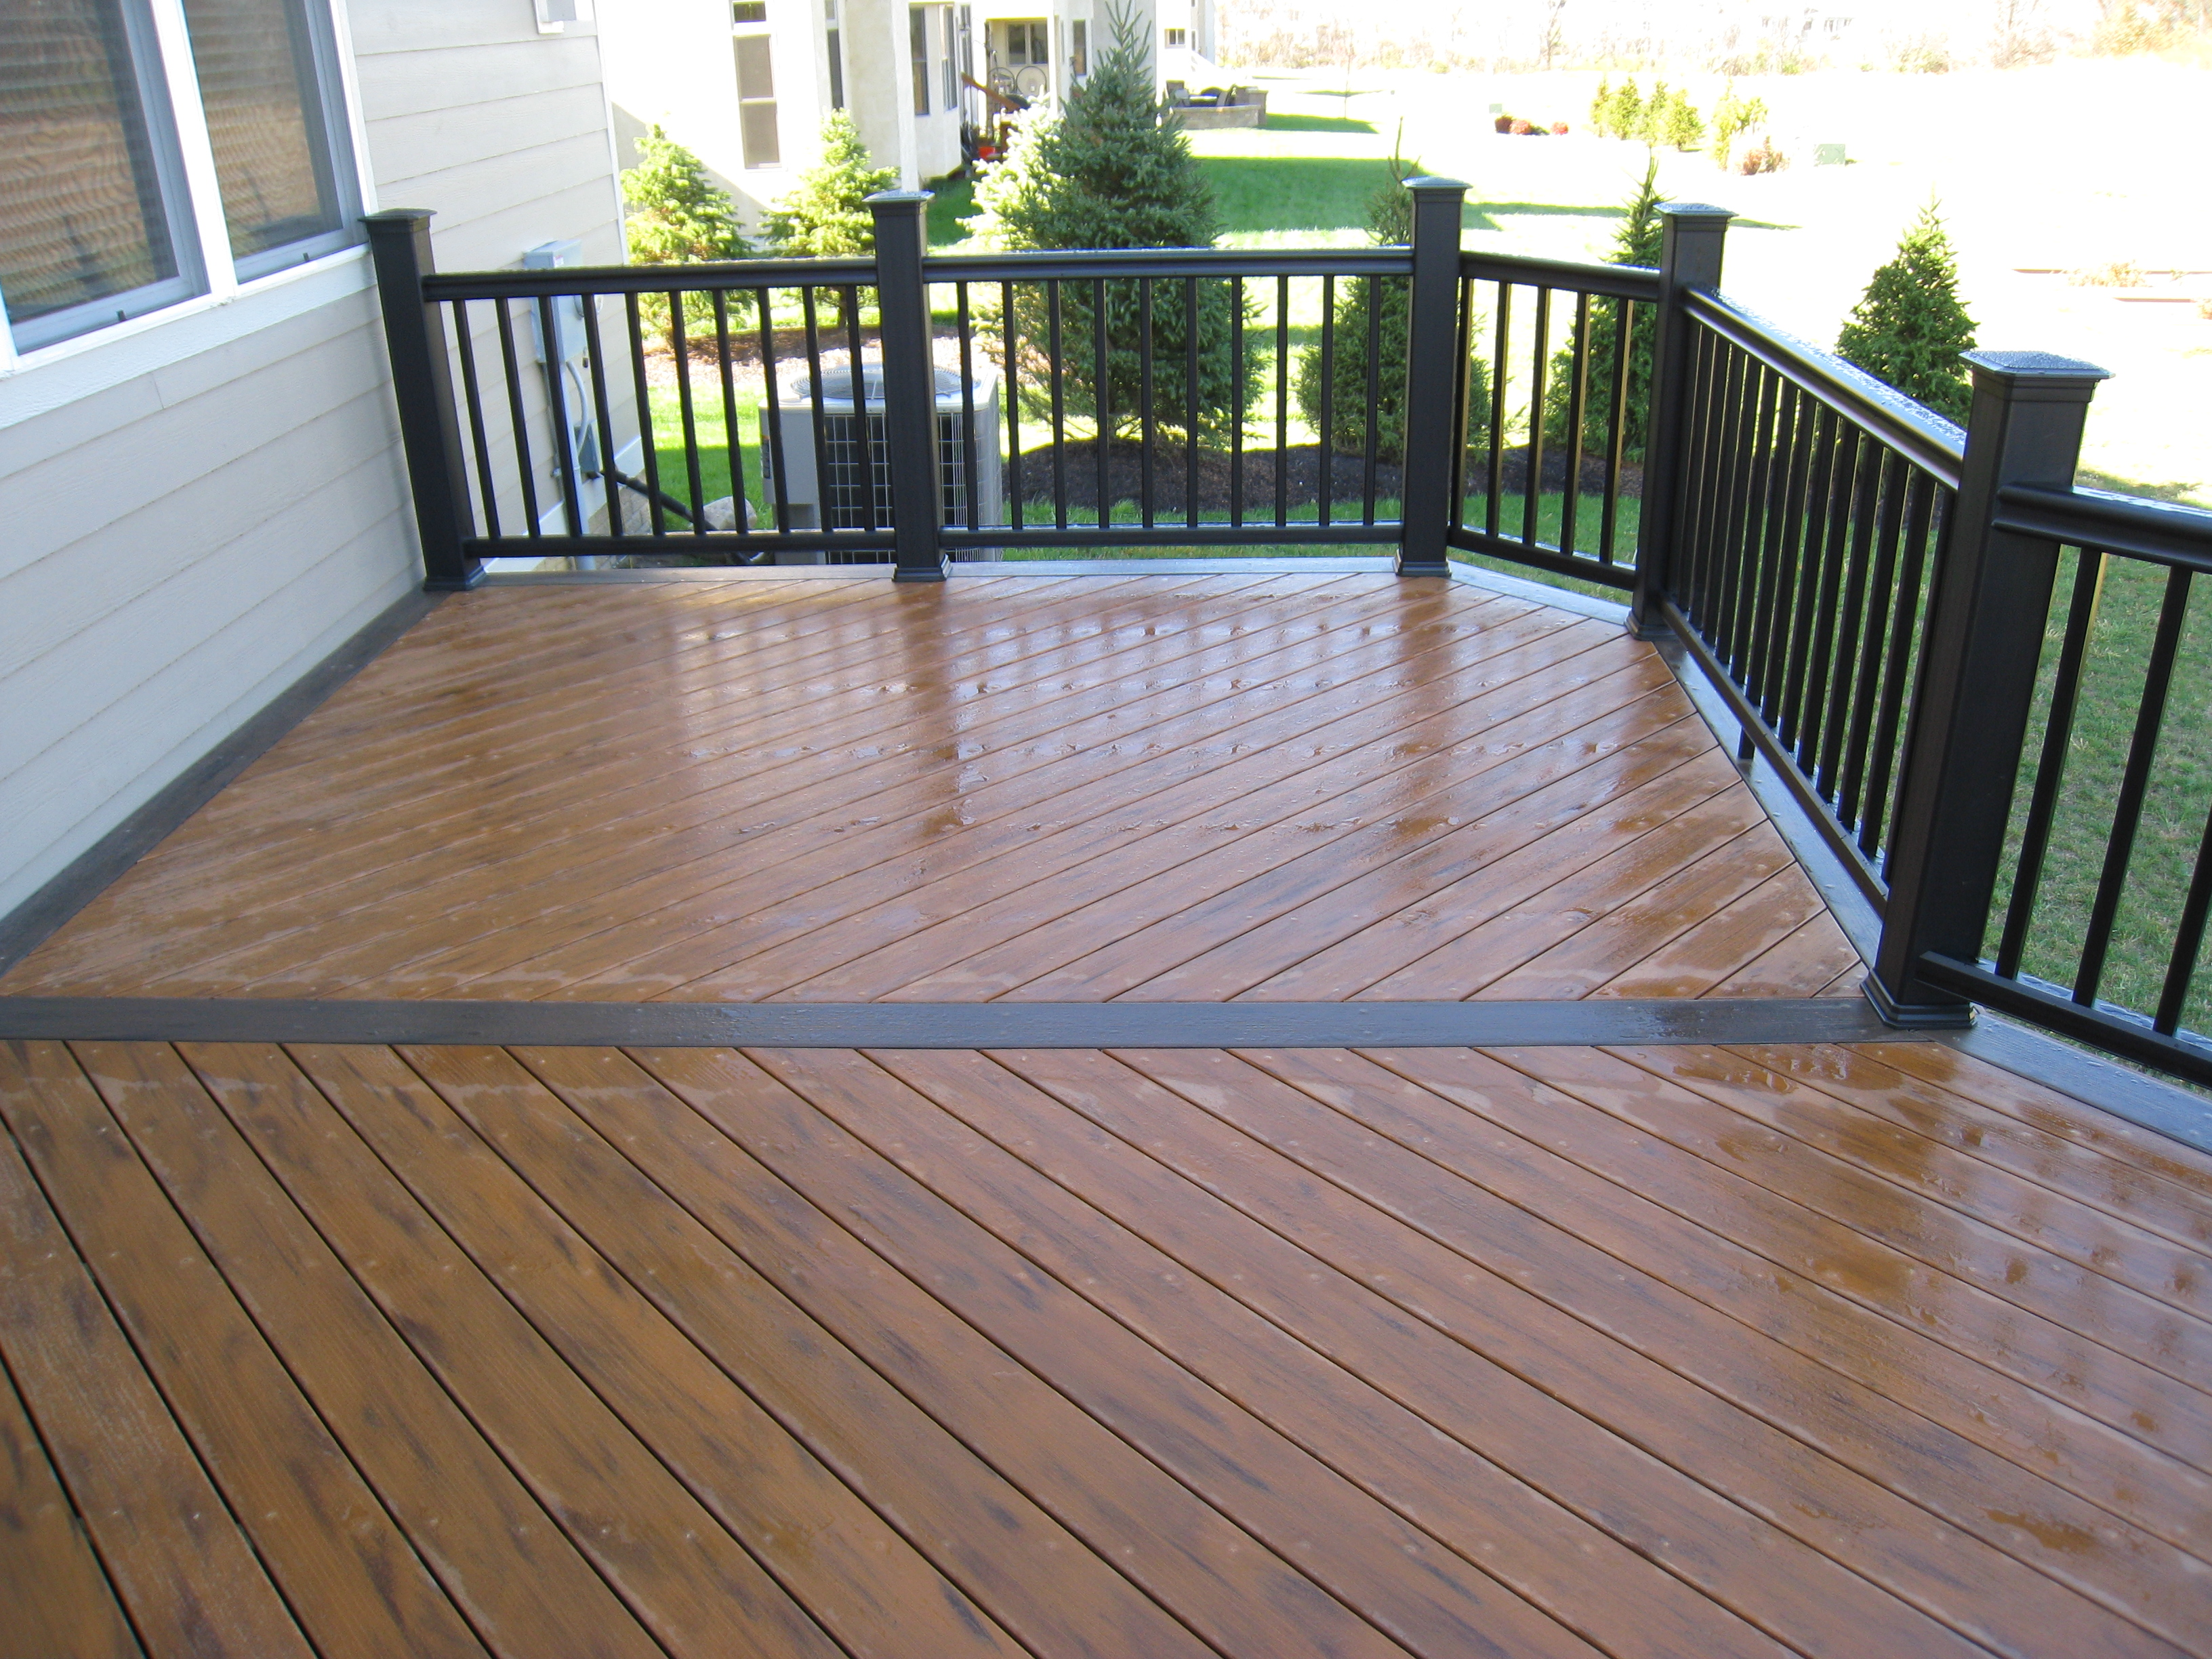 Timbertech earthwood evolutions columbus decks porches for Which timber for decking